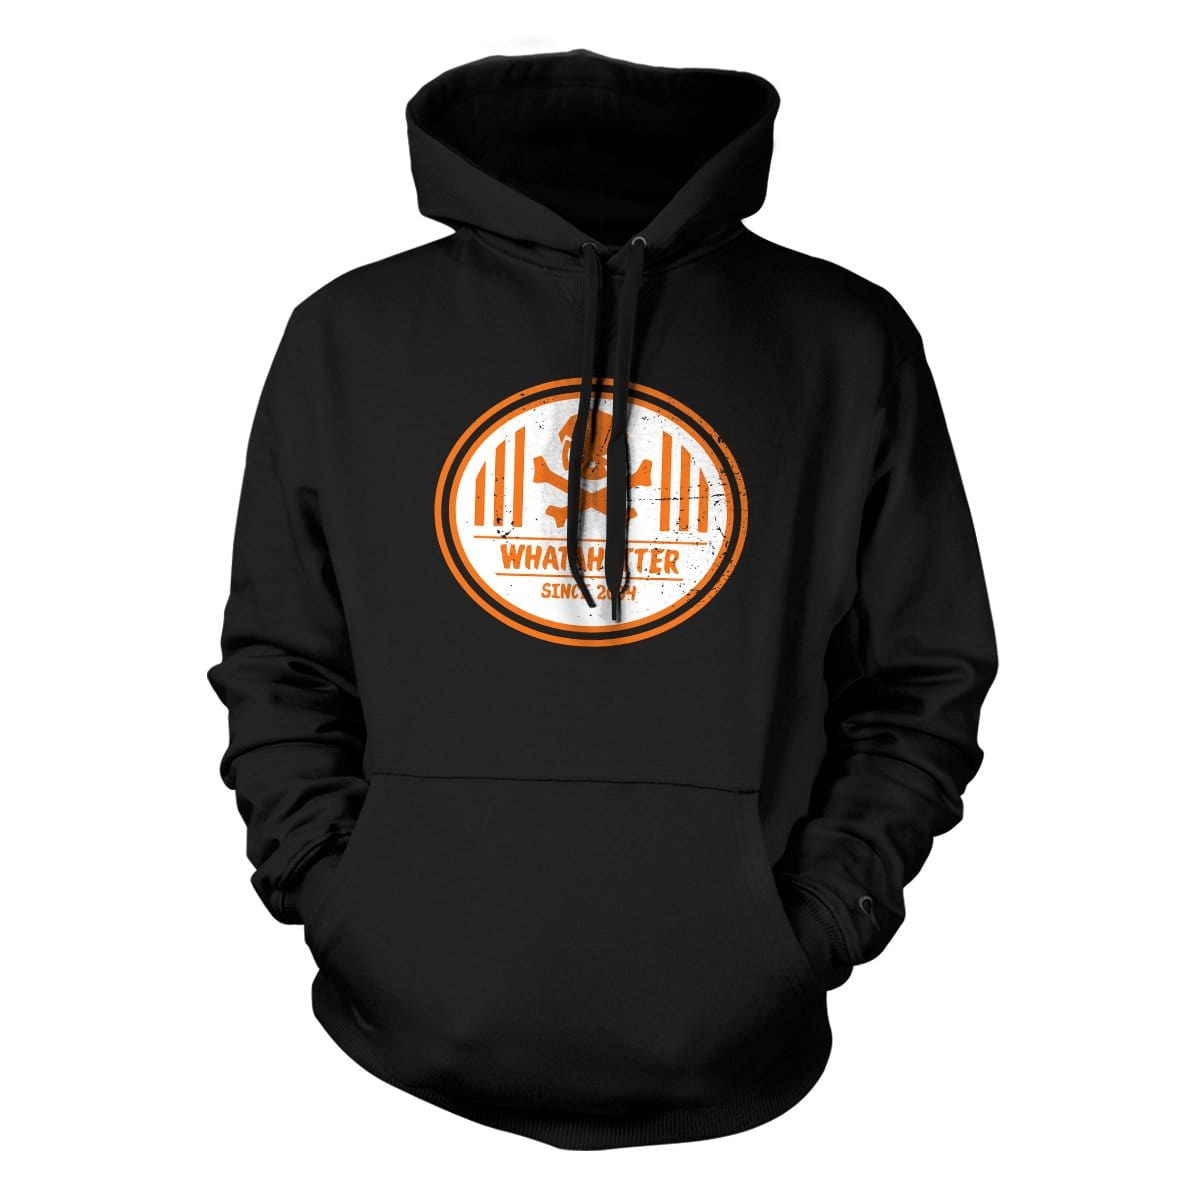 Whatahitter Hoodie - Black - Hoodies - Pipe Hitters Union